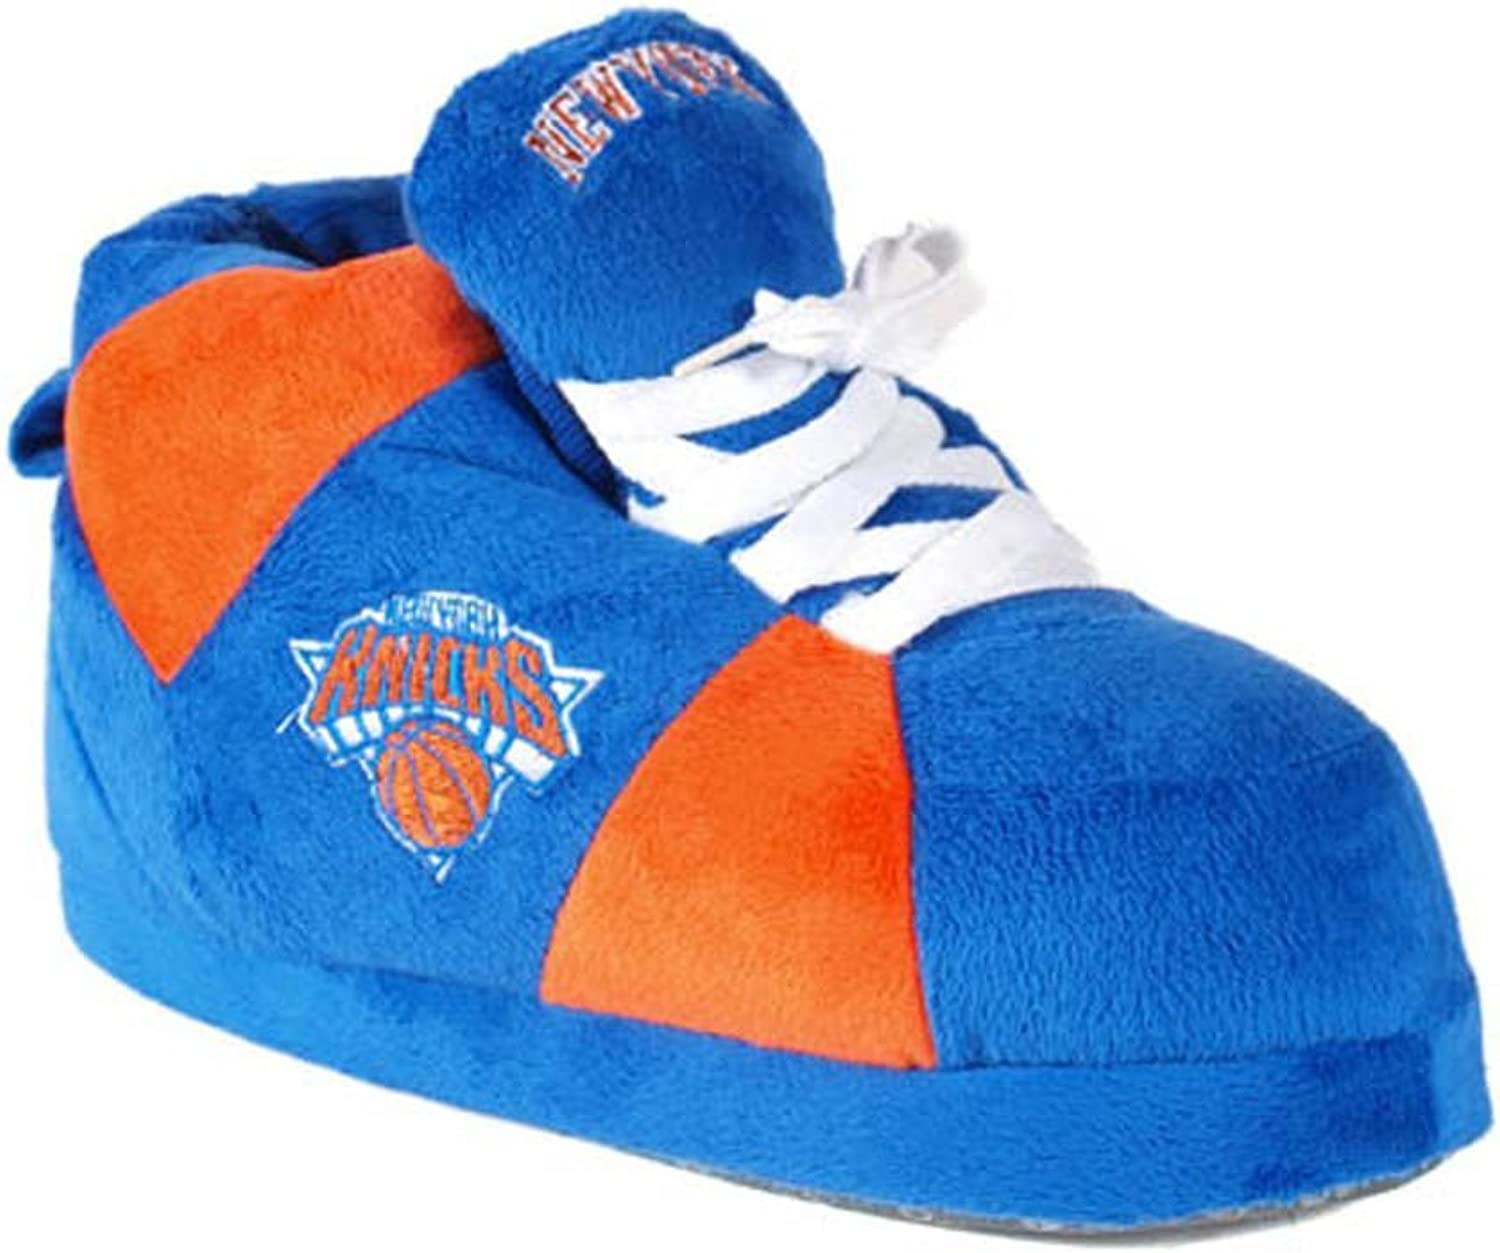 Happy Feet - New York Knicks - Slippers - Medium